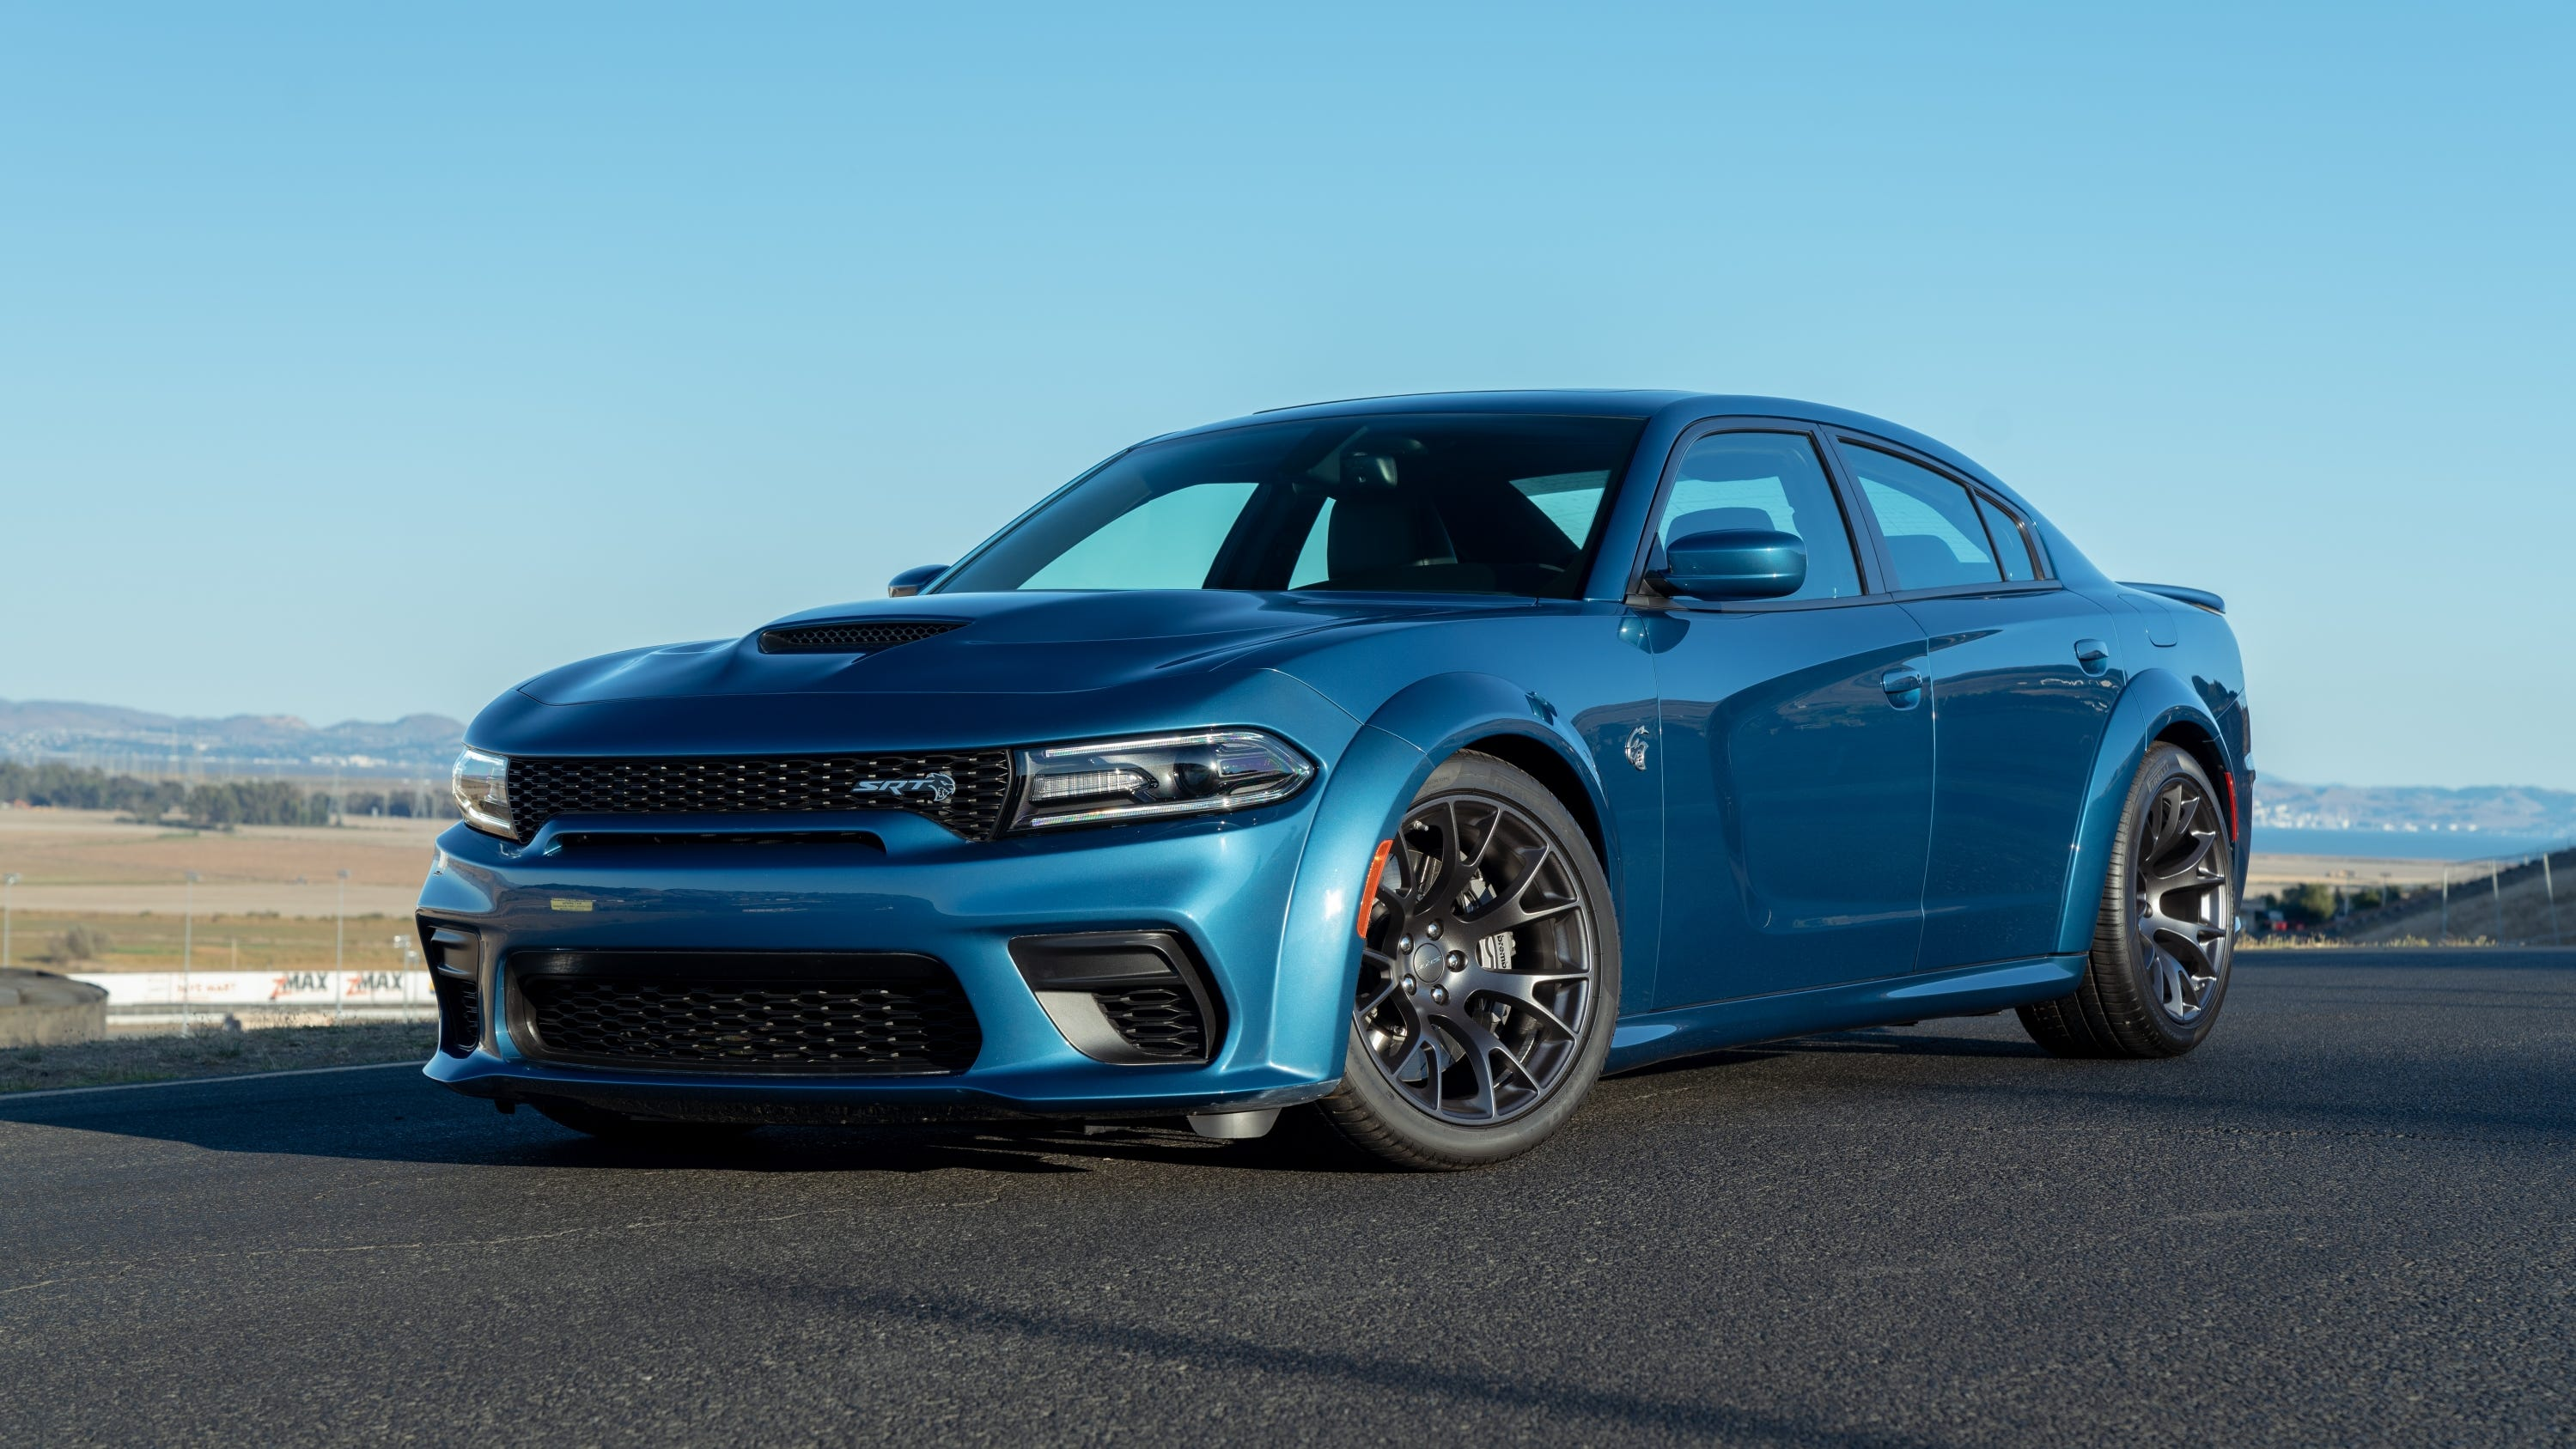 dodge charger scat pack performance The 1 Dodge Charger Hellcat and Scat Pack are examples of the